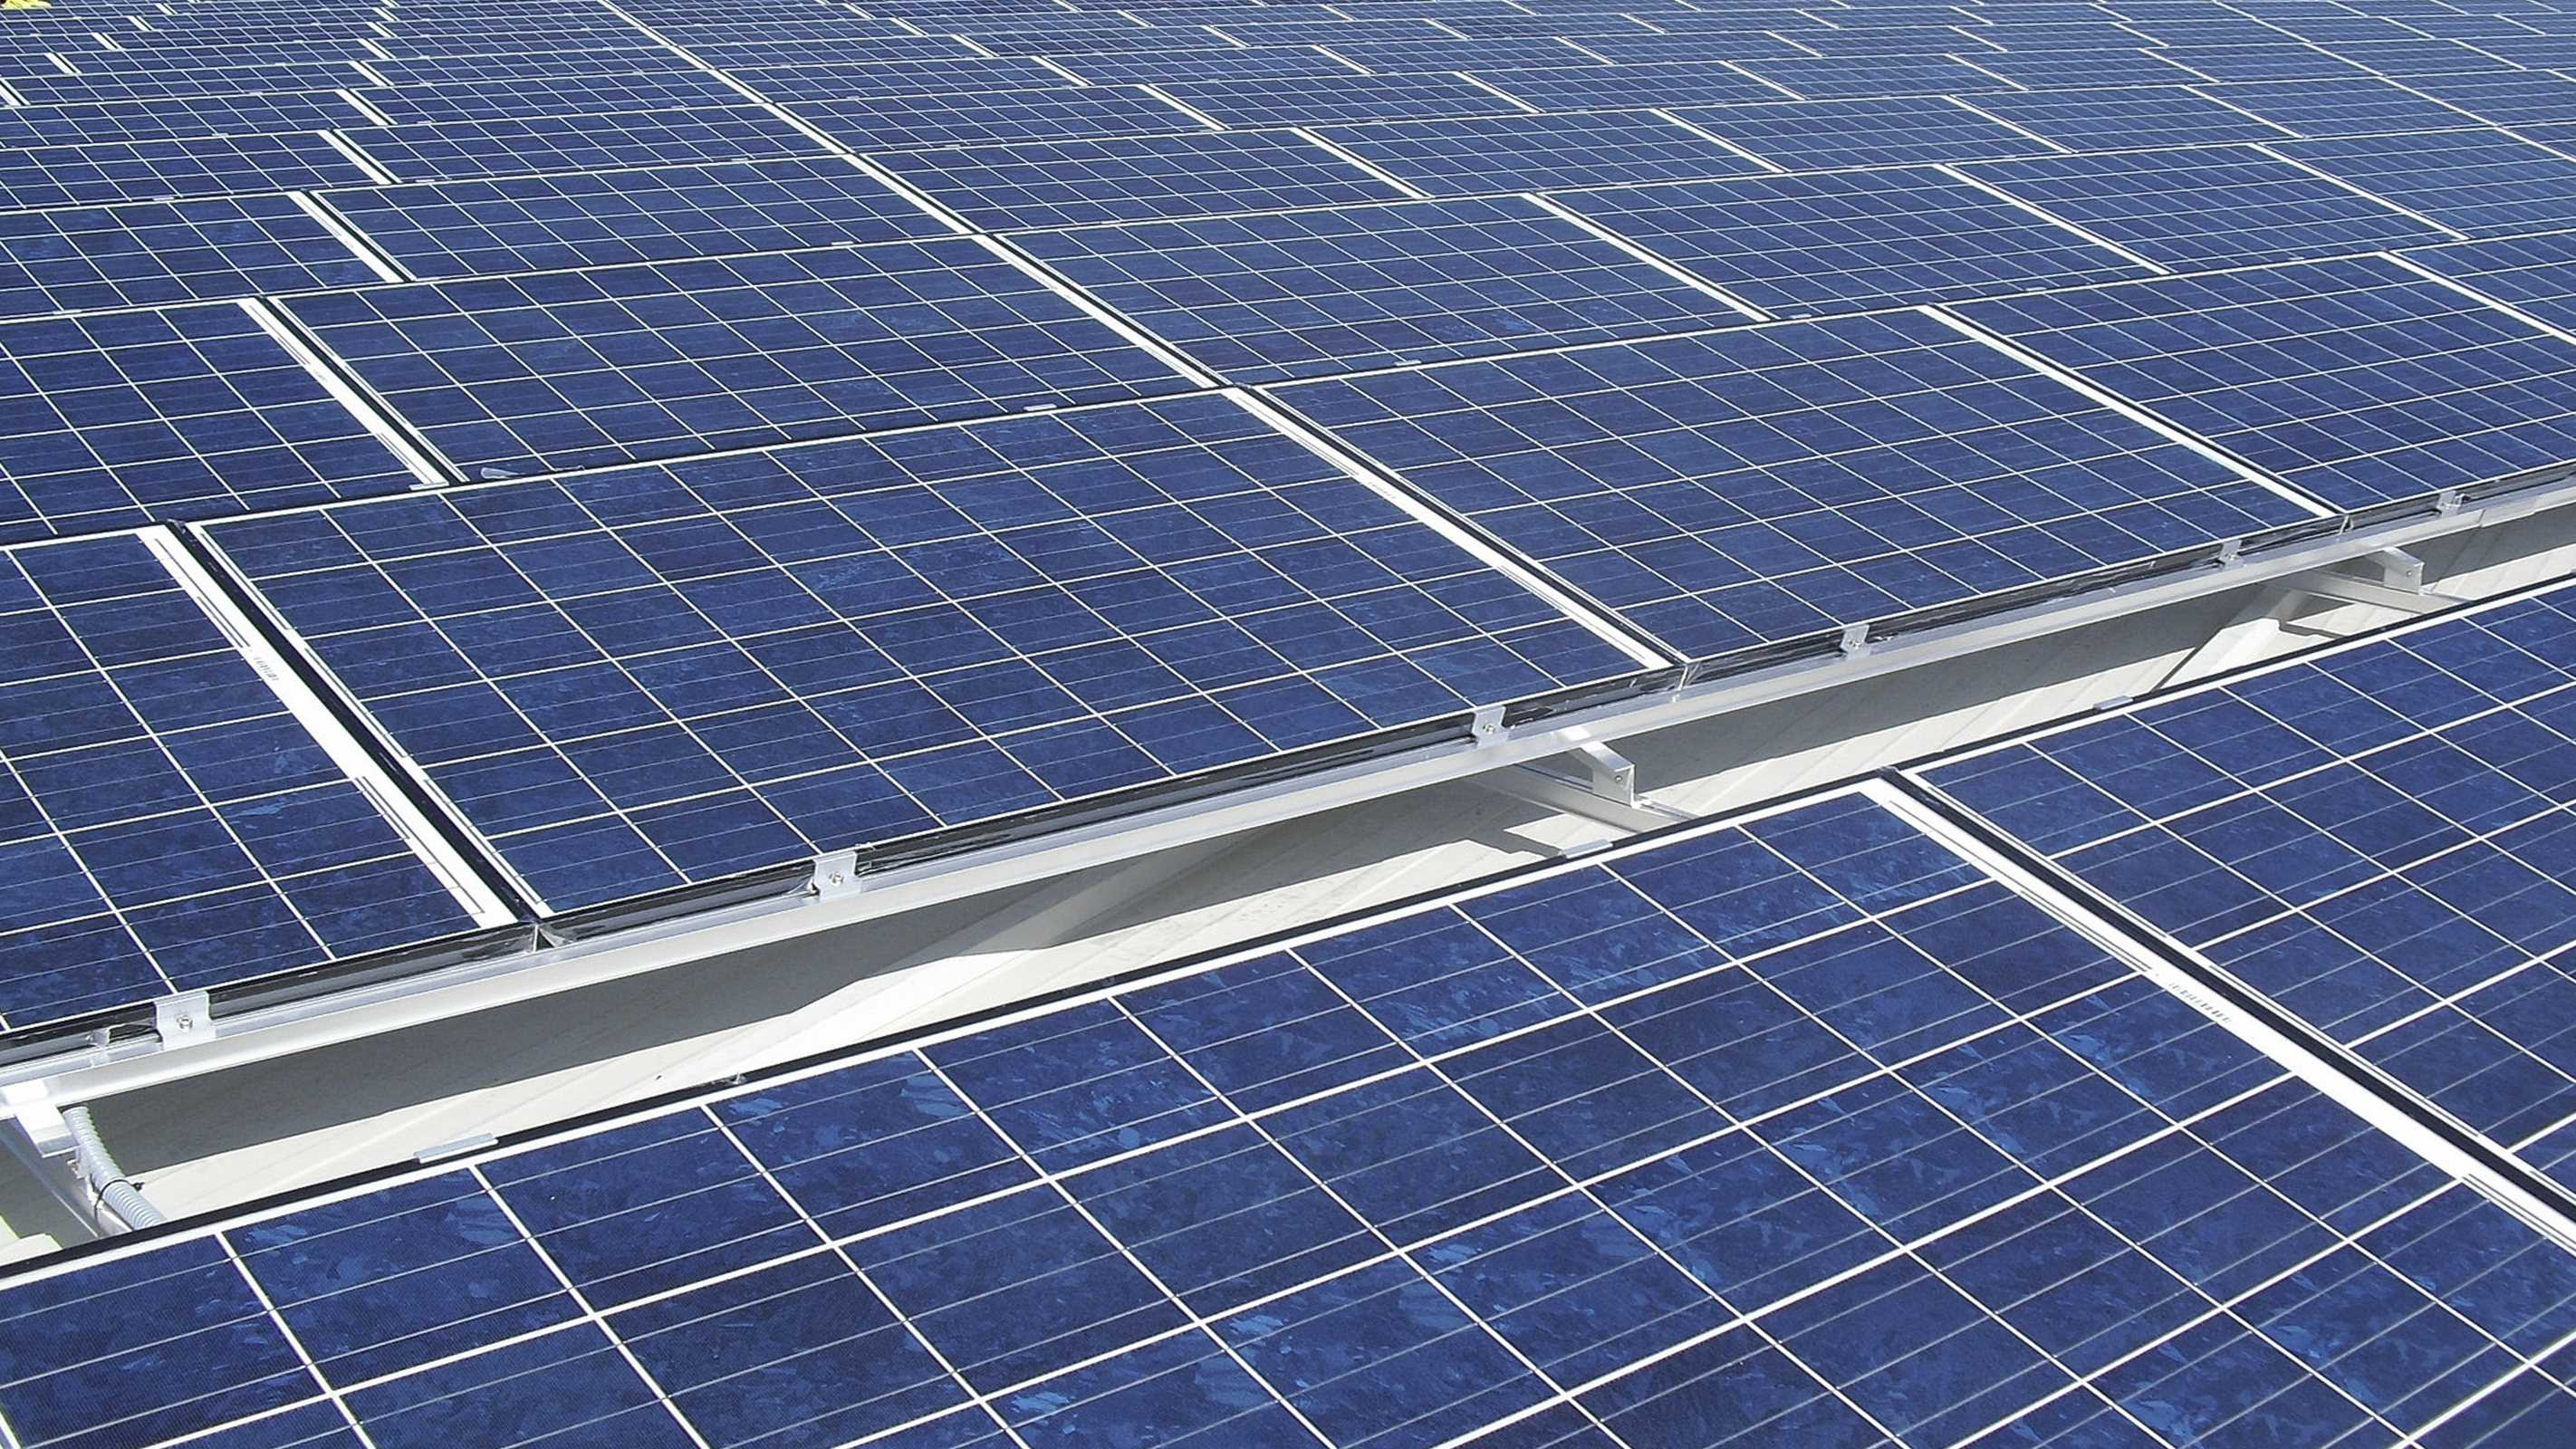 Pros And Cons Of Fossil Fuels >> Ultimate source of energy: solar energy pros and cons ...